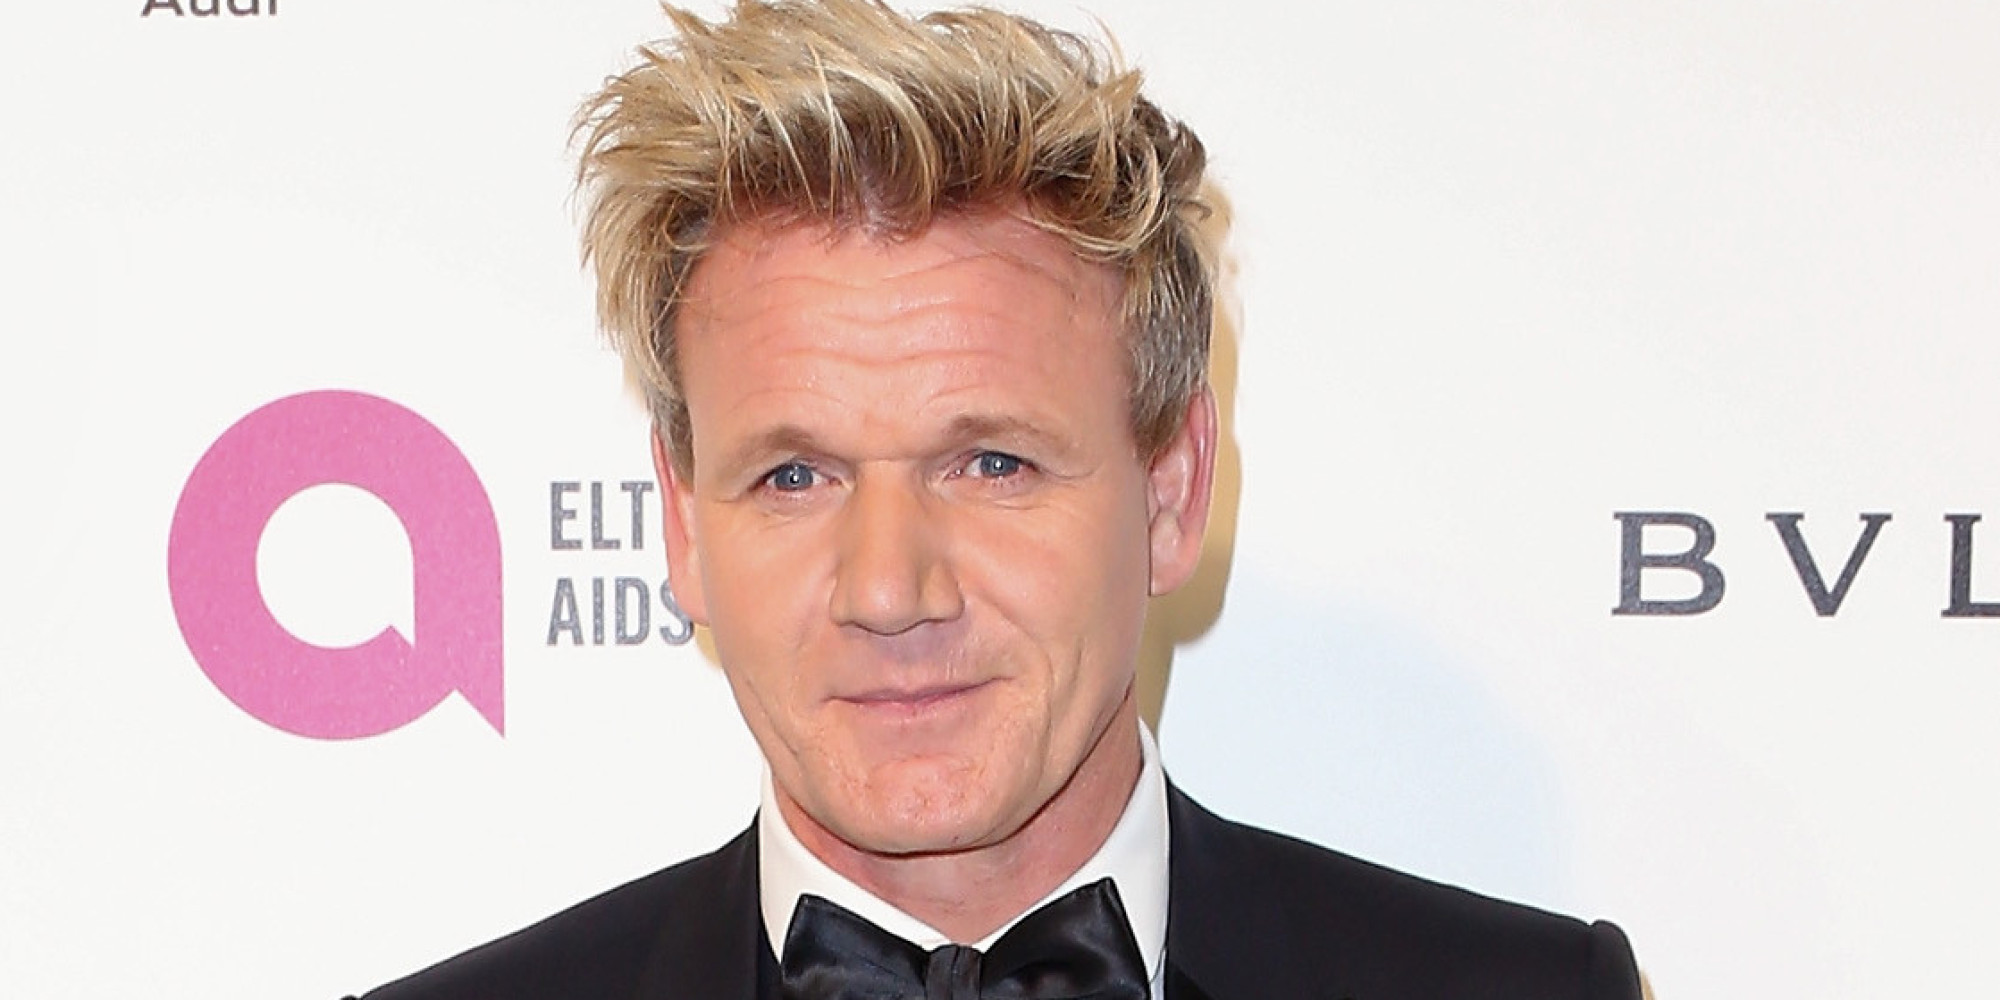 gordon ramsay - photo #48